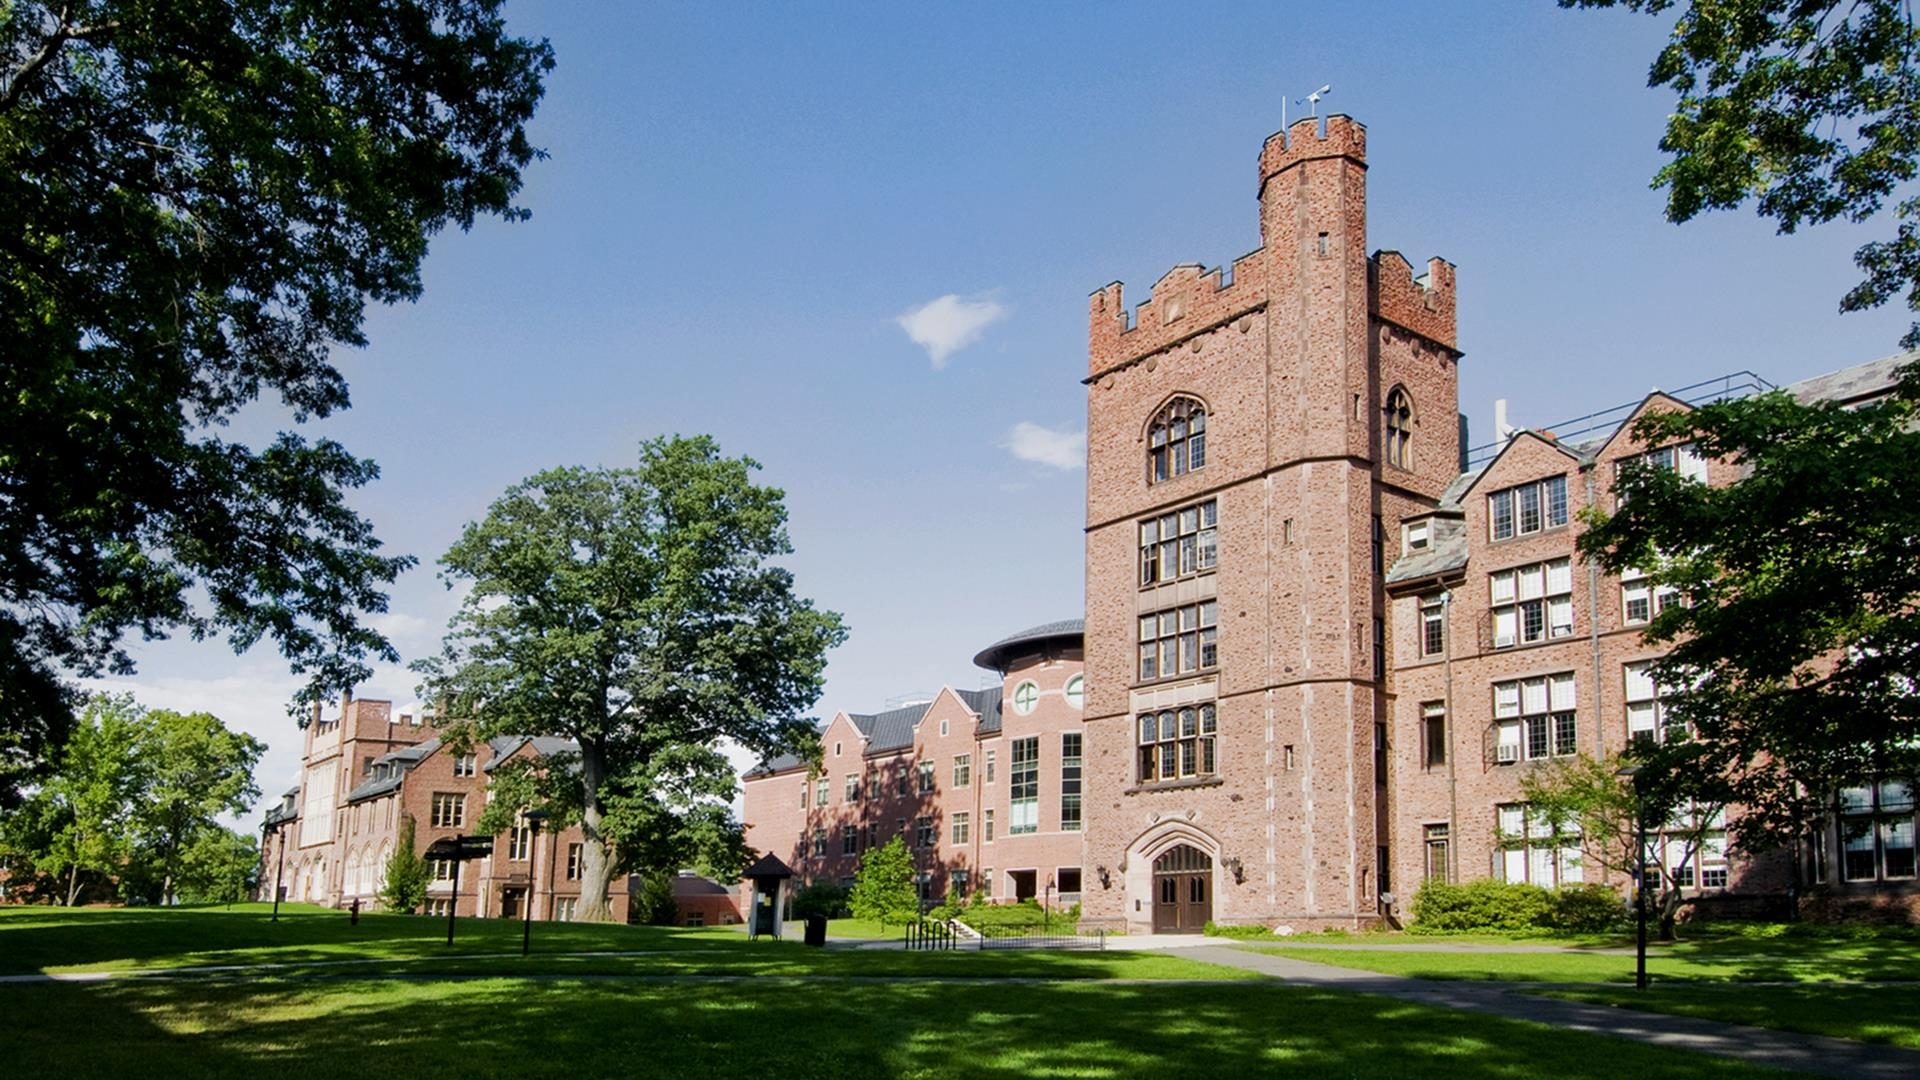 Mount Holyoke prof tried to kill colleague in case of unrequited love, police said